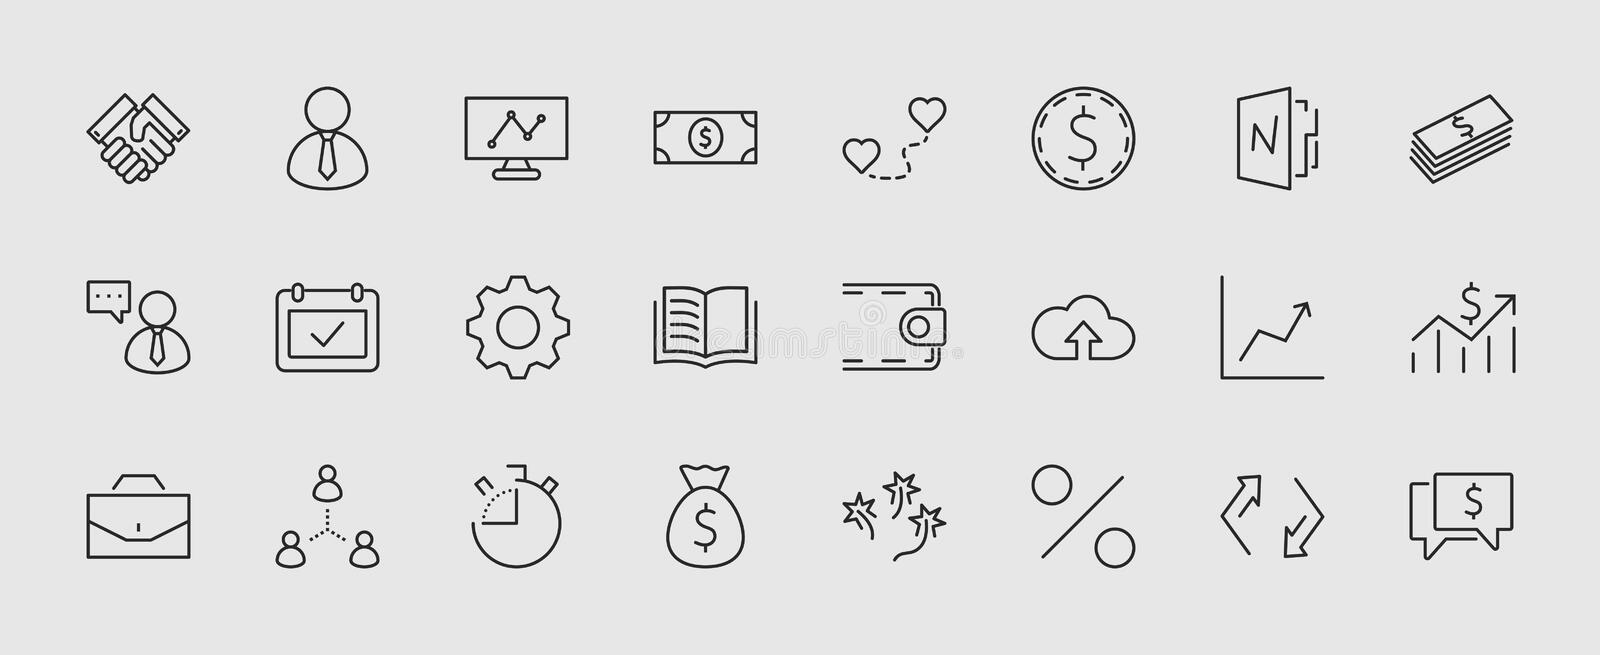 Set of business vector line icons. It contains symbols of a handshake, a user, dollar pictograms, gears, a briefcase, a vector illustration